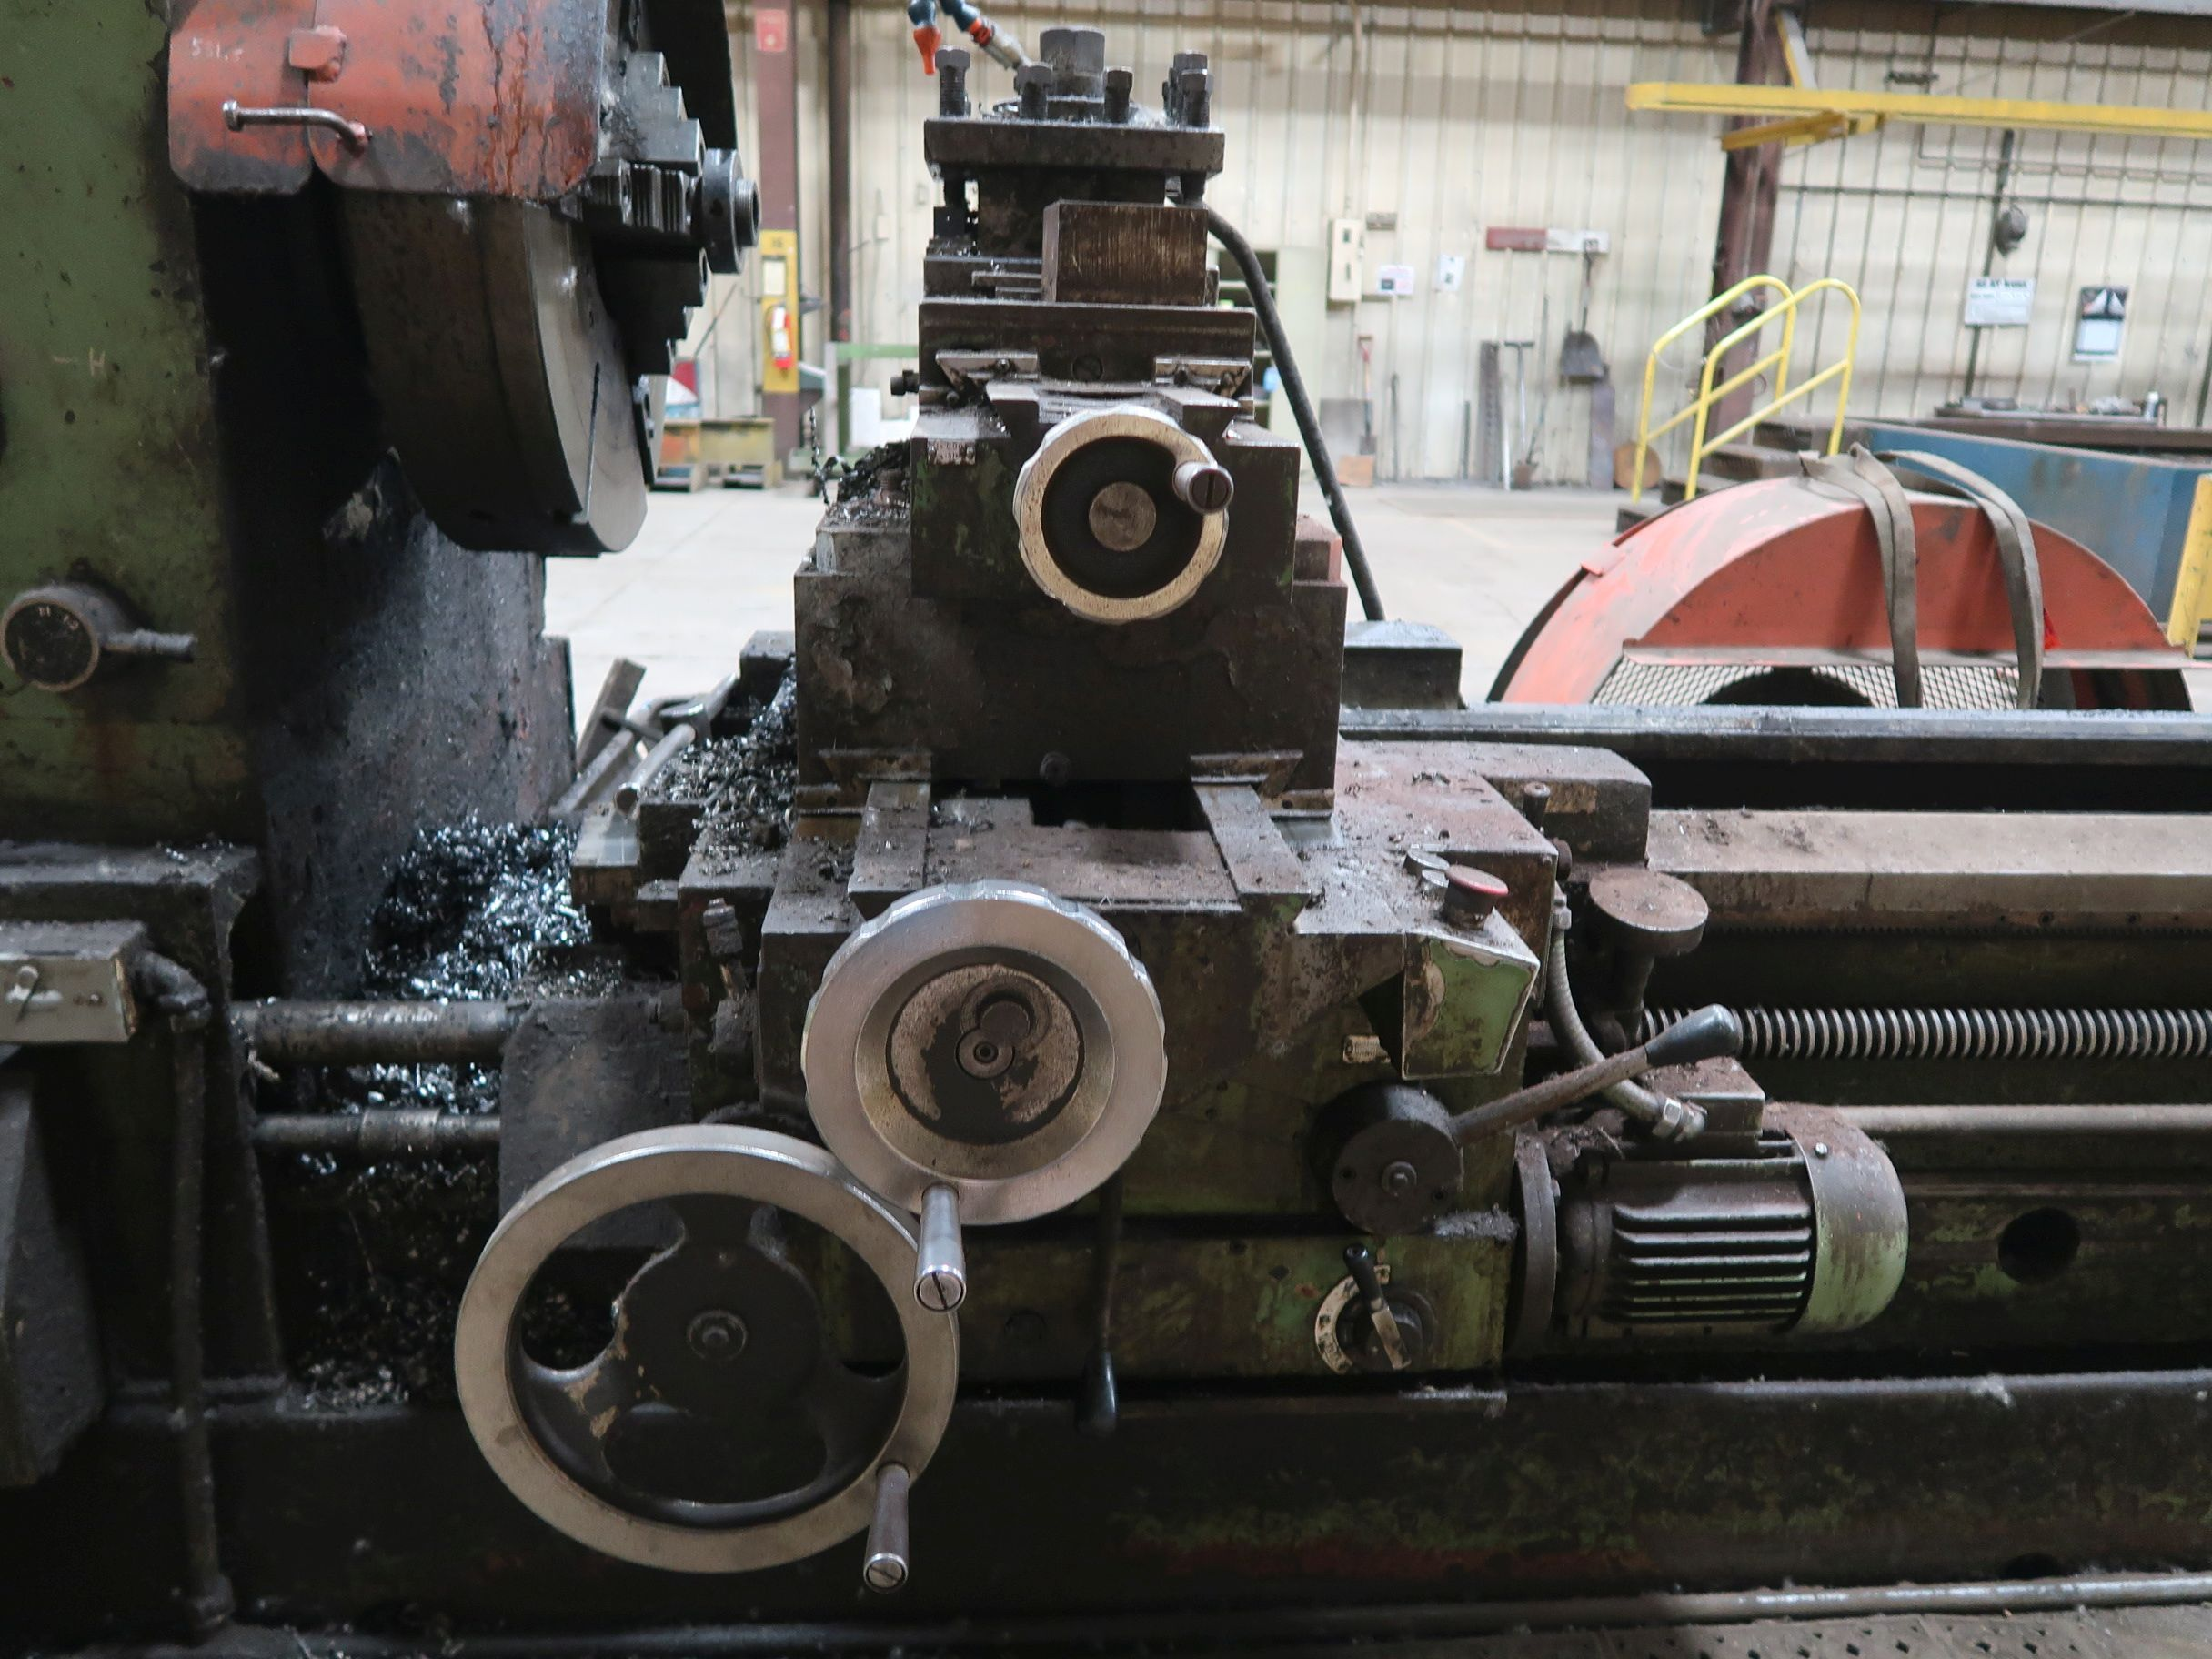 """40"""" X 160"""" GRUTZPE TIMEMASTER MODEL 4000/500 DOUBLE CHUCK ENGINE LATHE; SPEEDS TO 500 RPM, APPROX. - Image 9 of 14"""